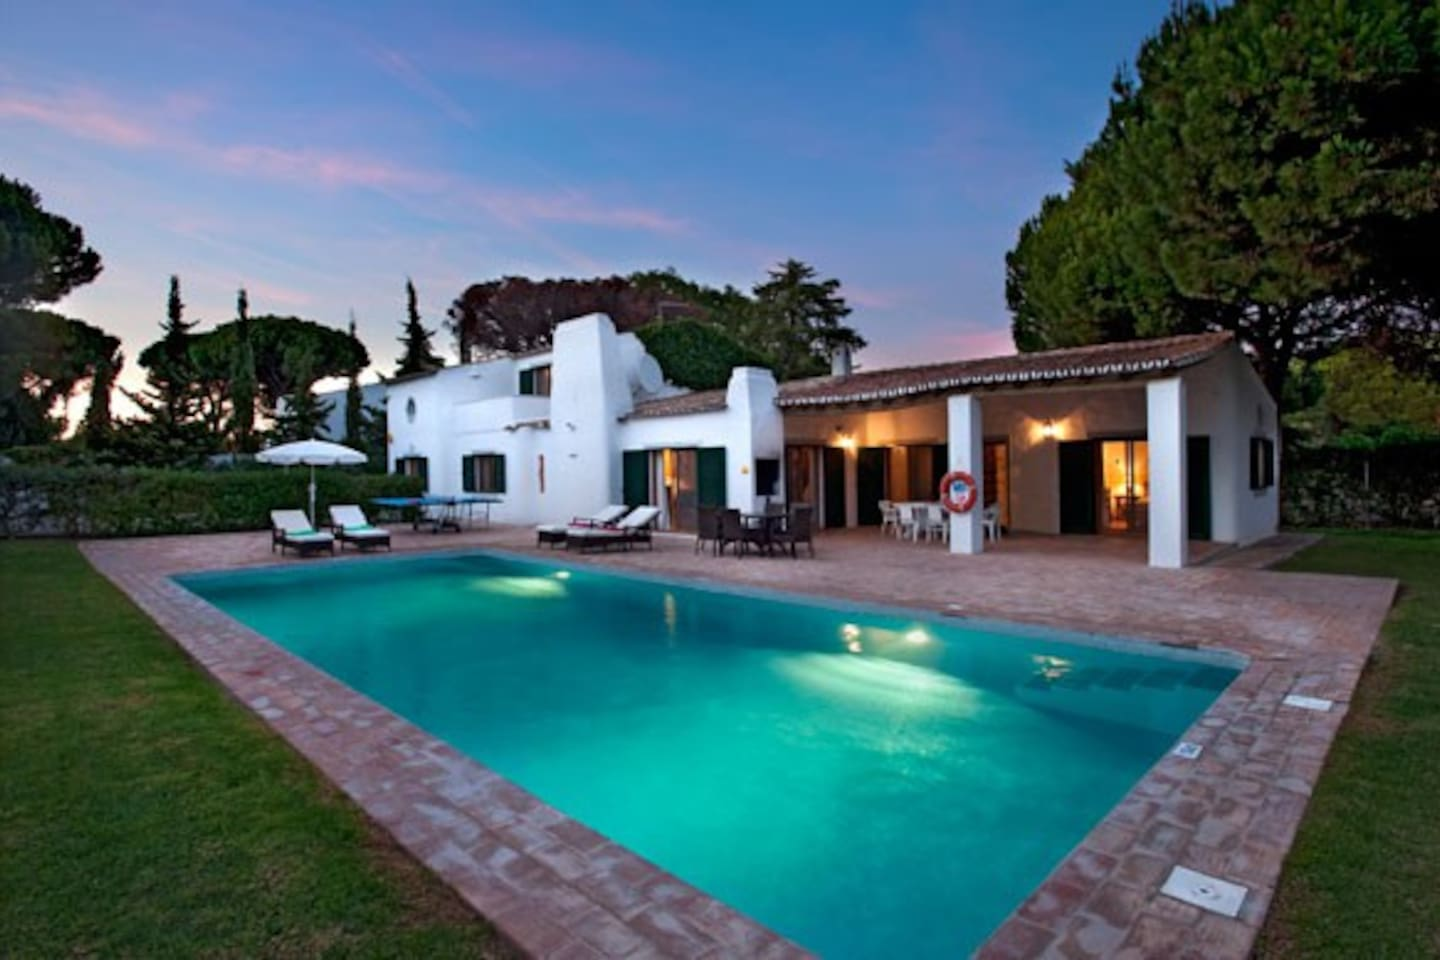 Lovely Portuguese villa with spacious outdoors and large private pool